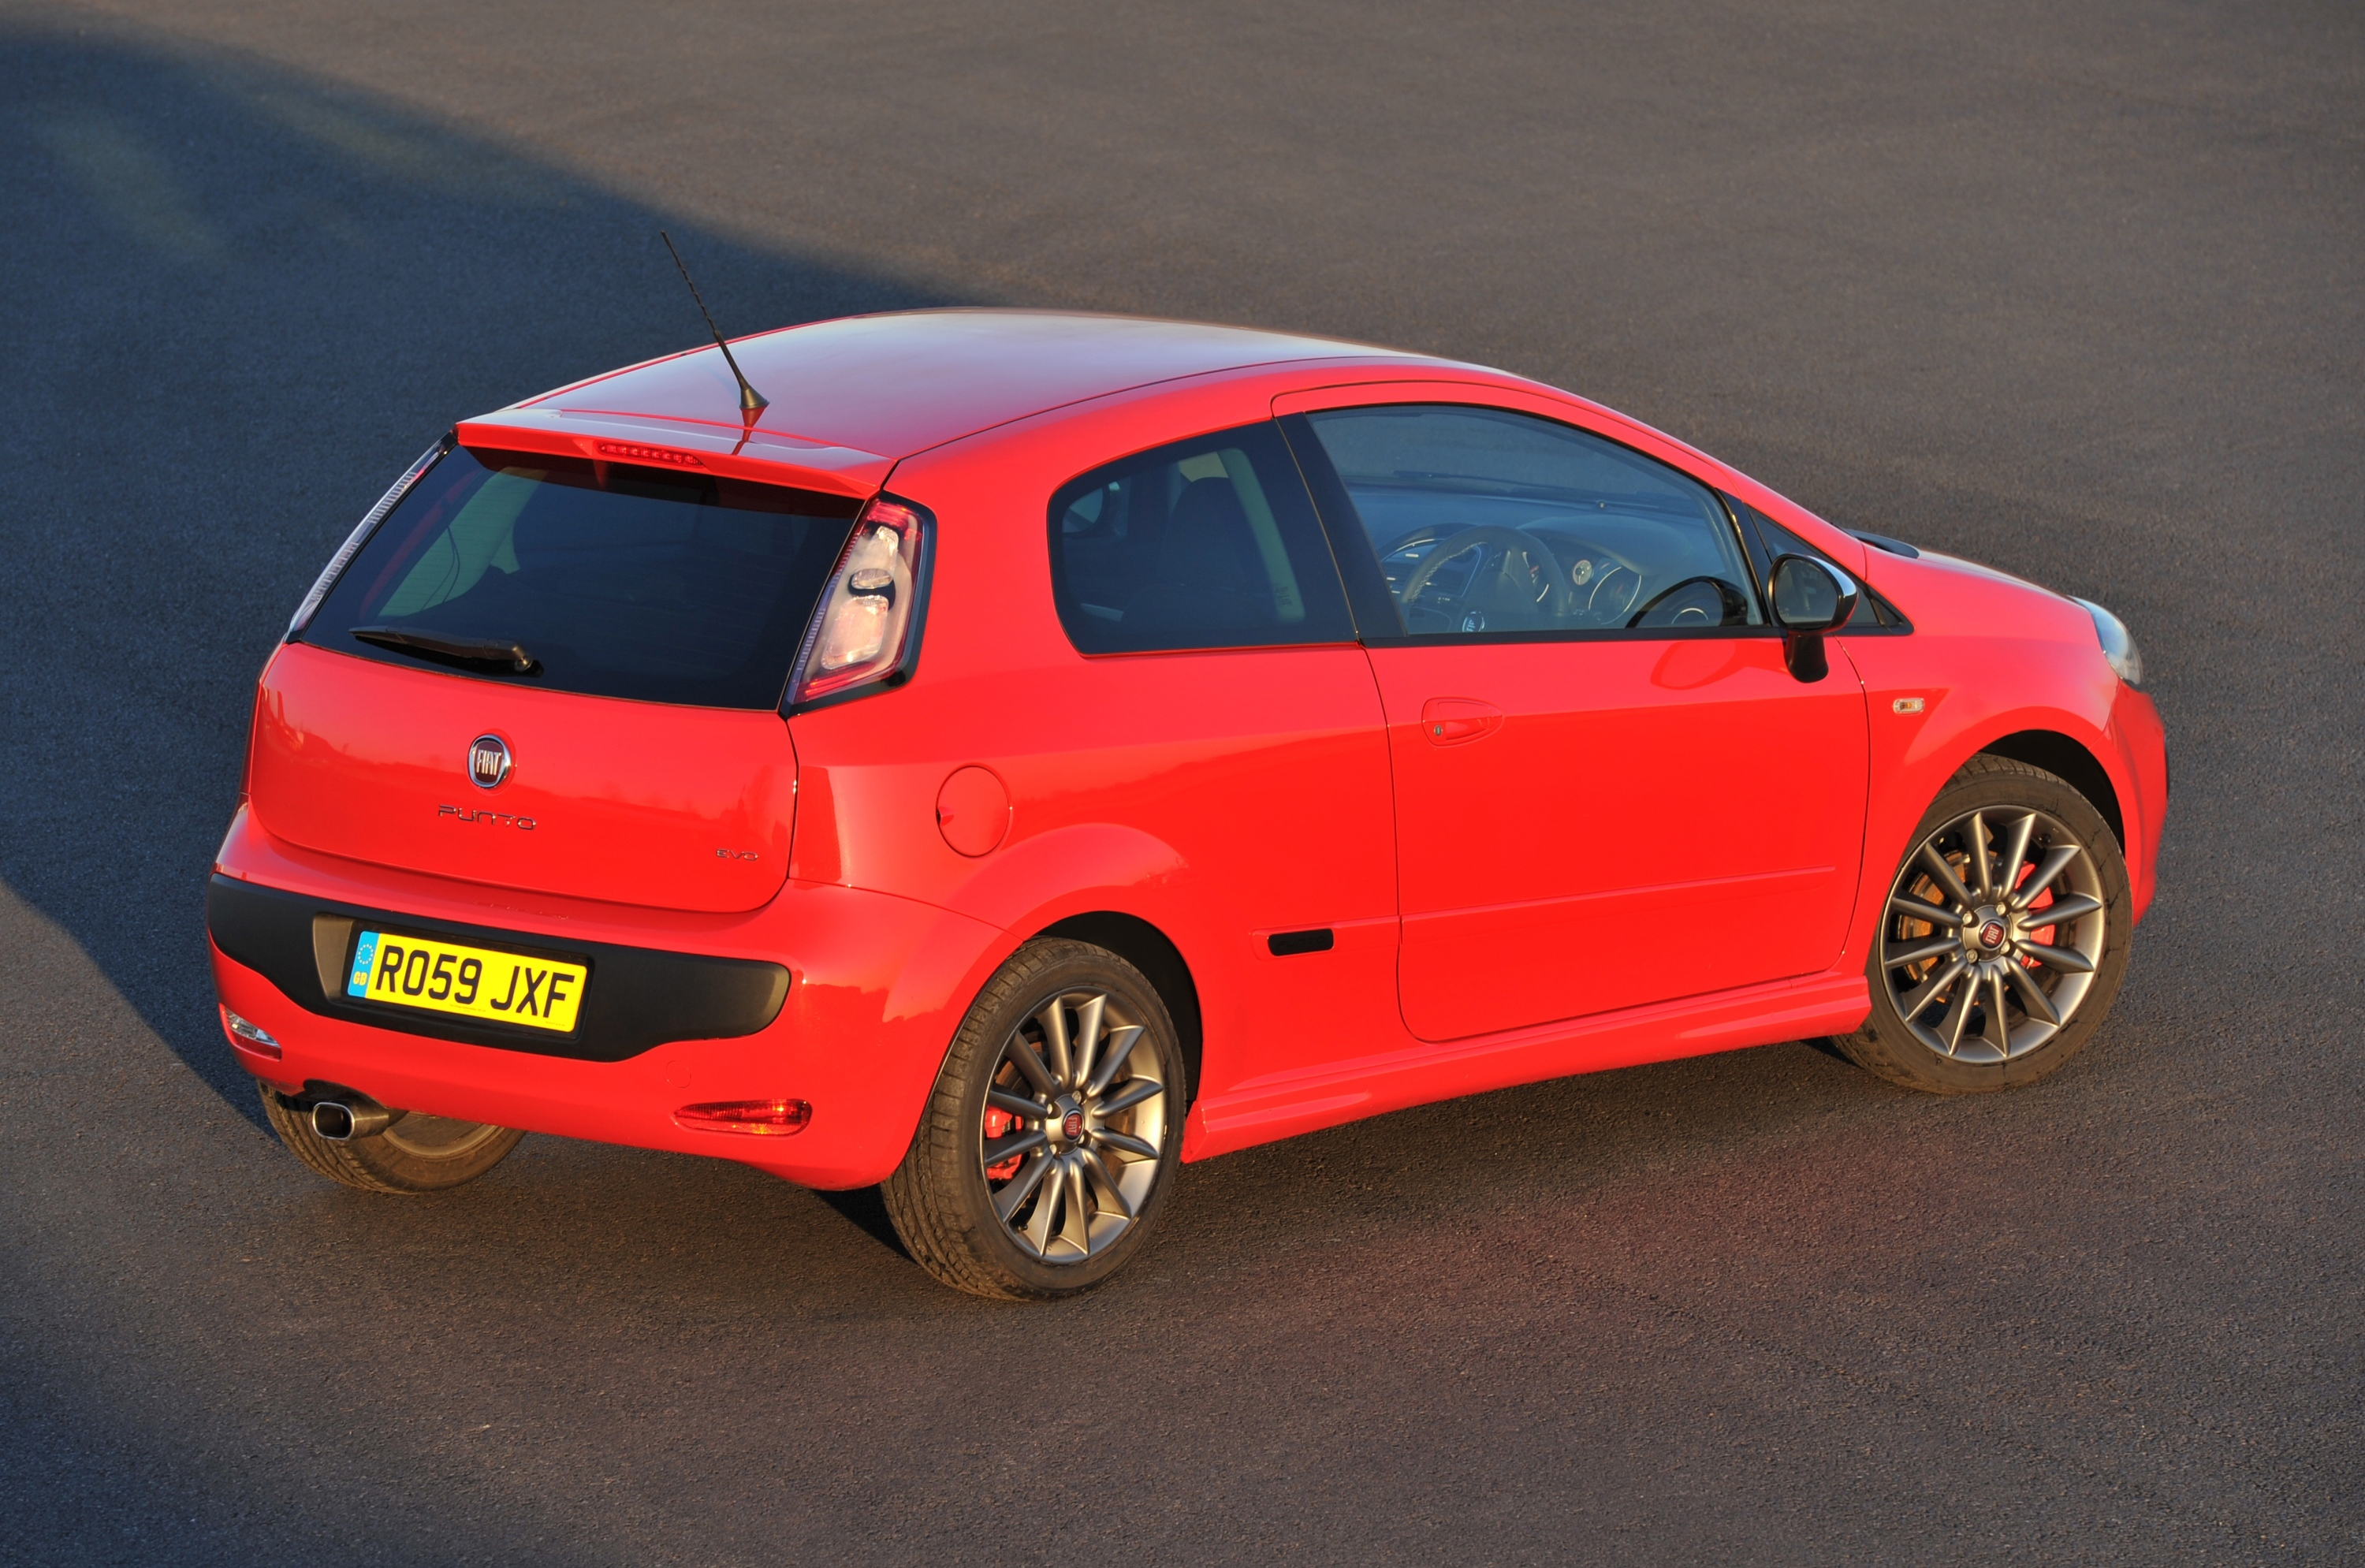 fiat punto evo 1 4 16v multiair 135 sporting car write ups. Black Bedroom Furniture Sets. Home Design Ideas